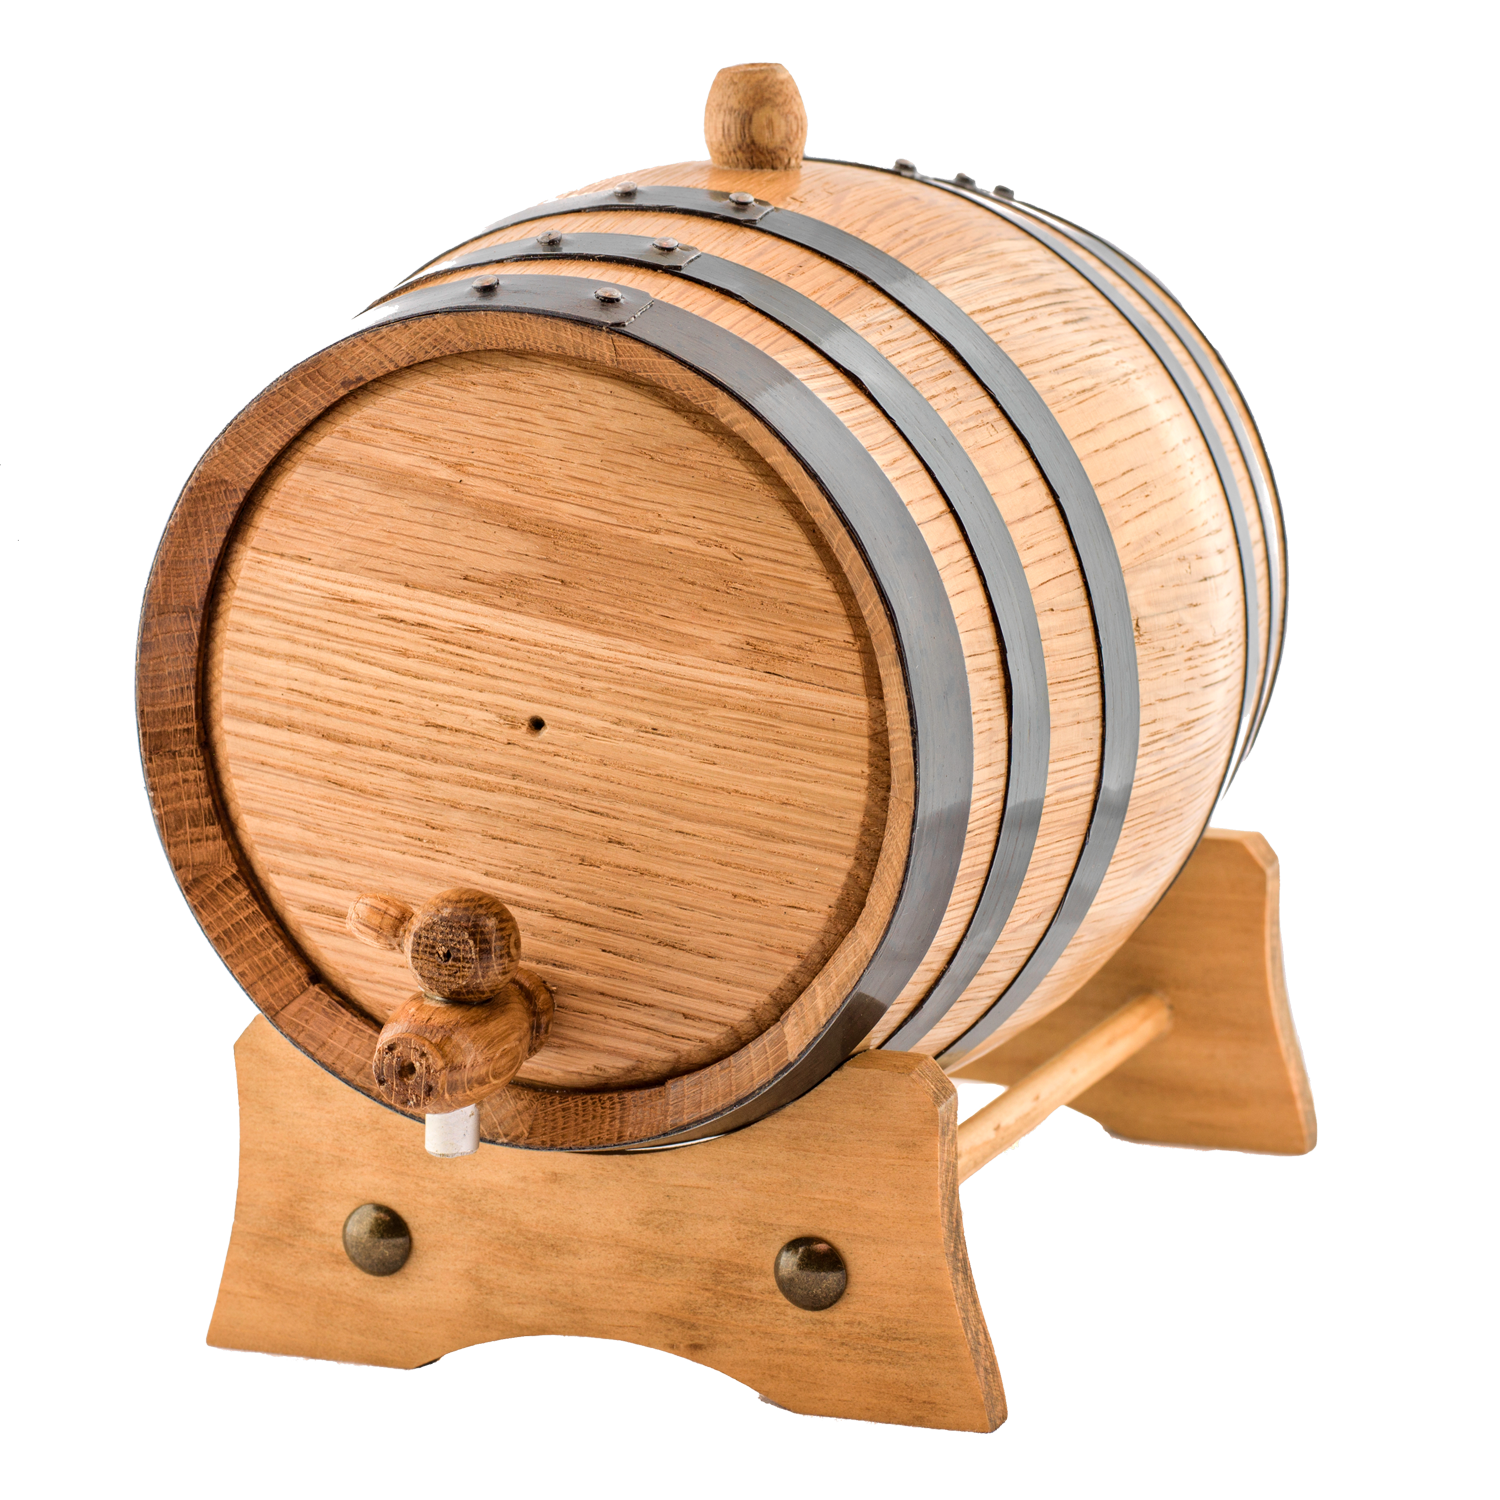 2 Liters American White Oak Wood Aging Barrel | Age your own Tequila, Whiskey, Rum, Bourbon, Wine...